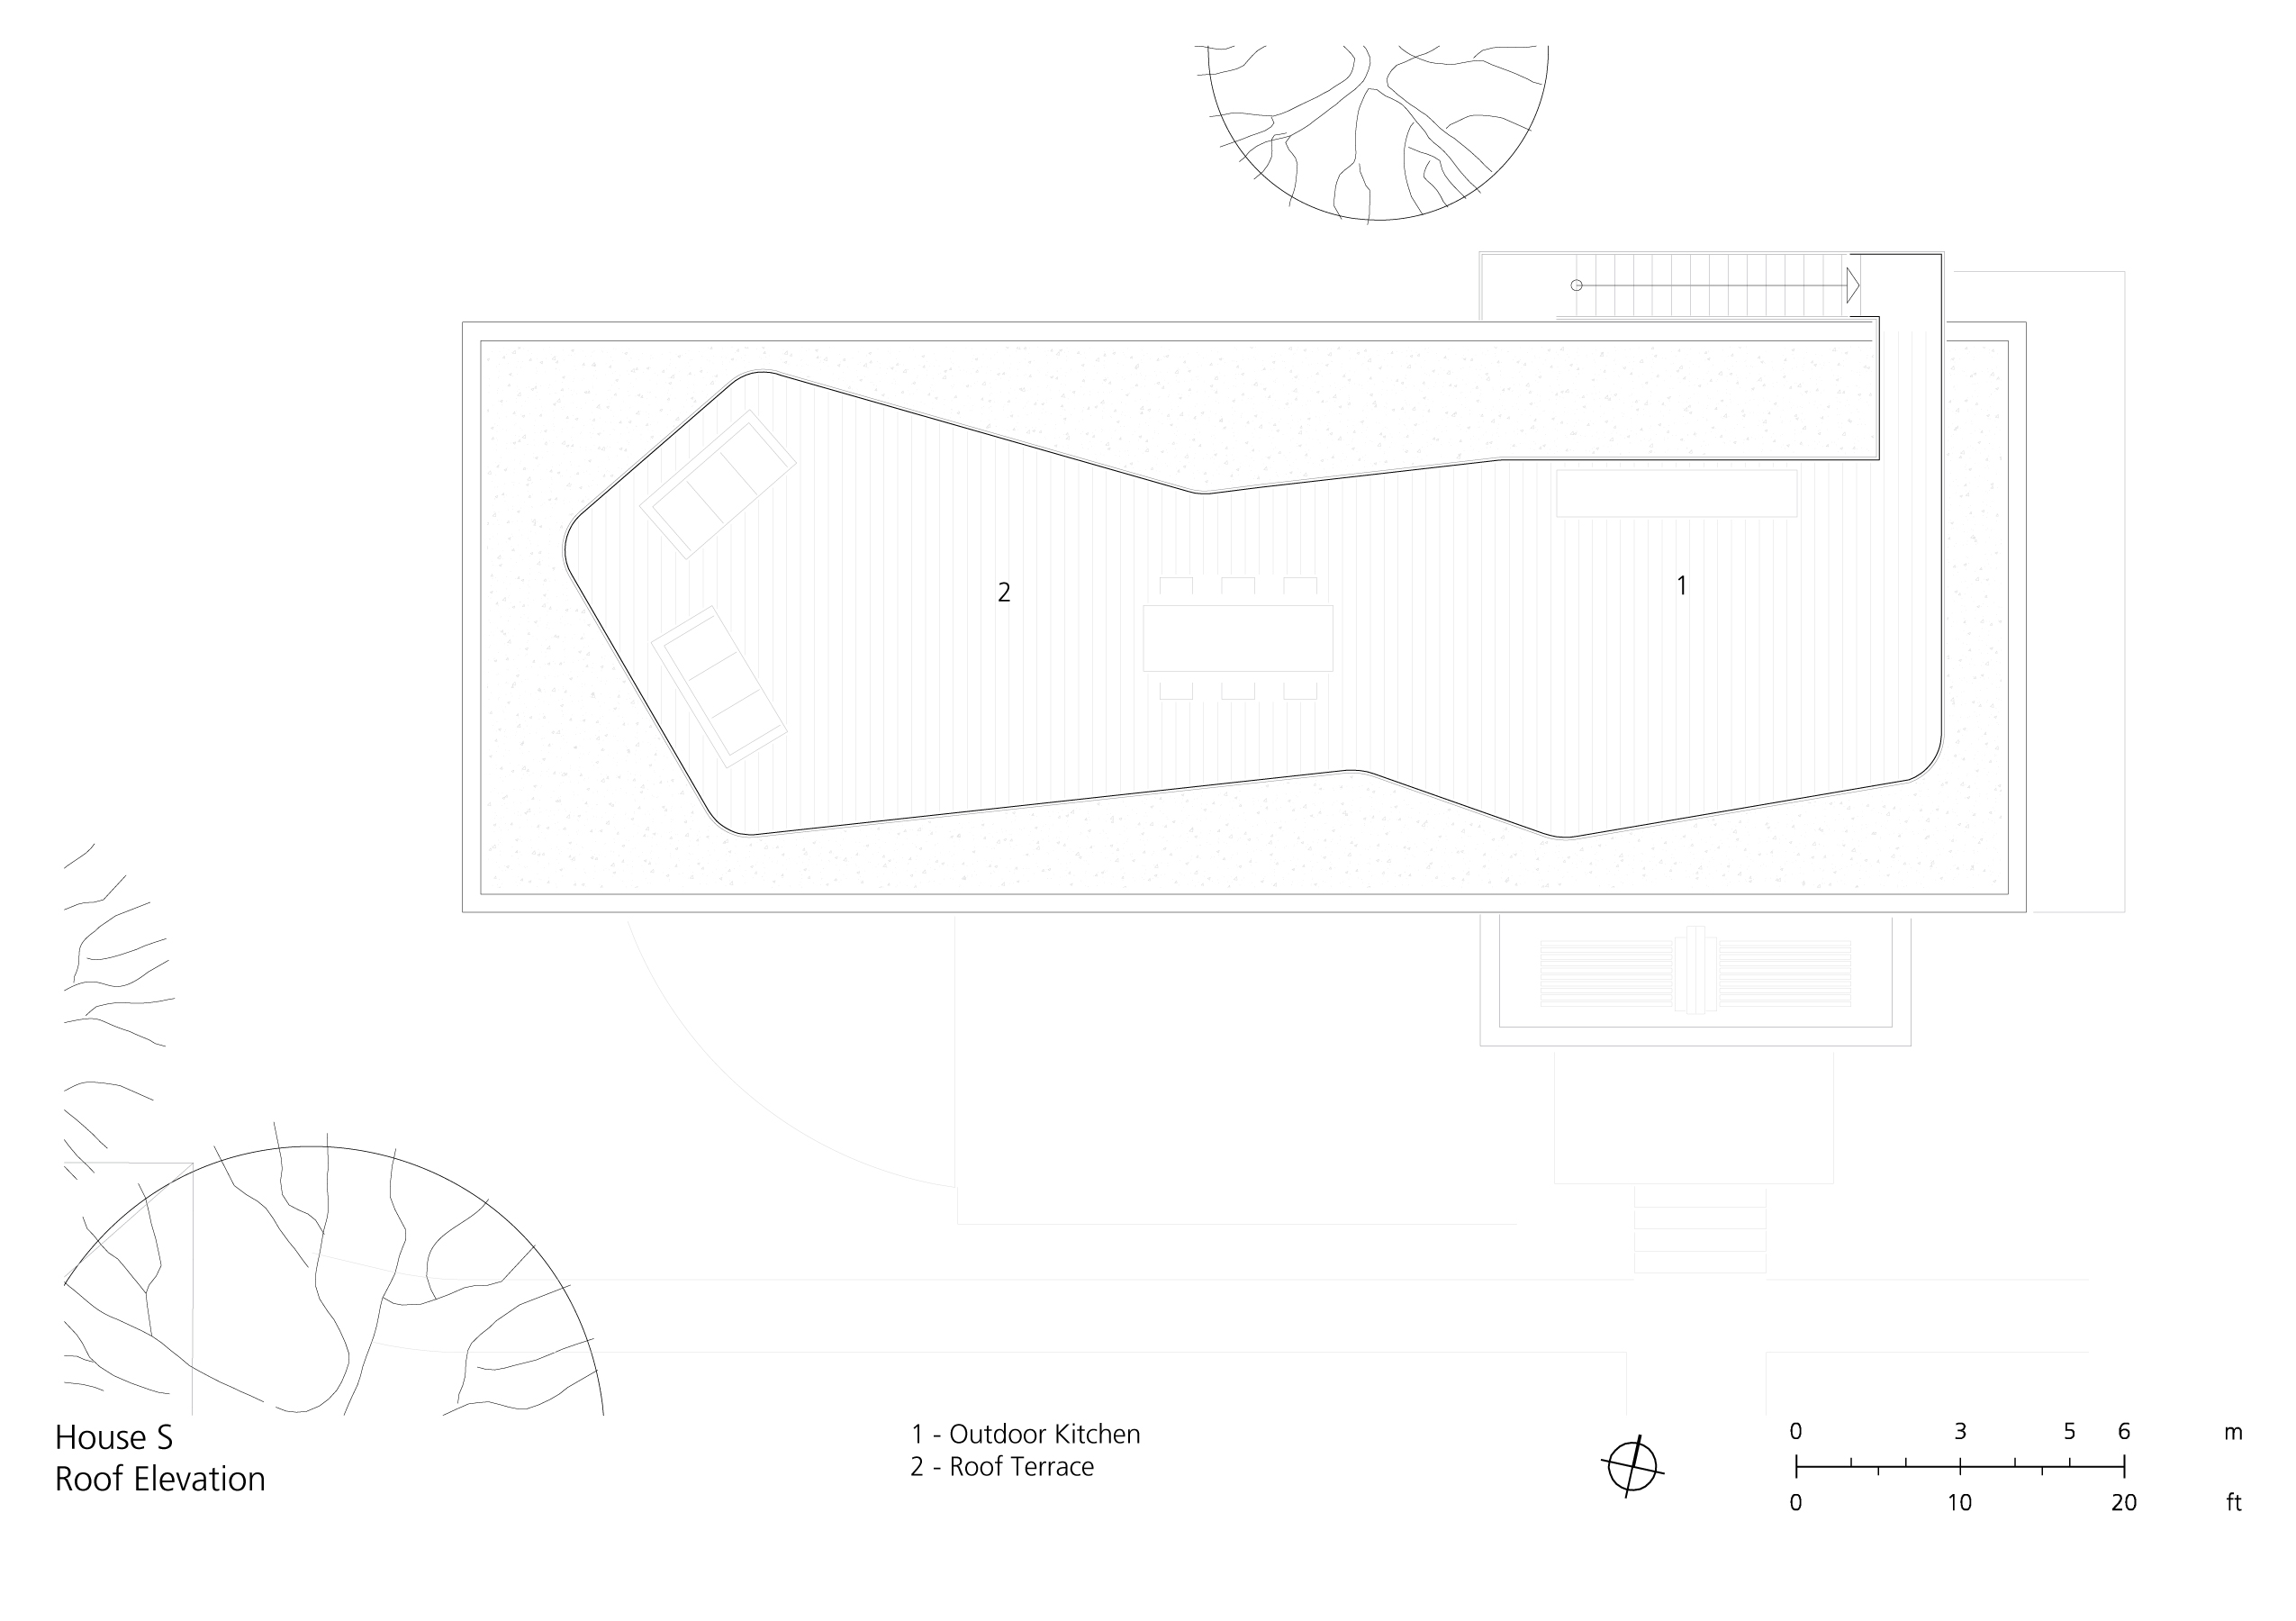 Roof elevation }